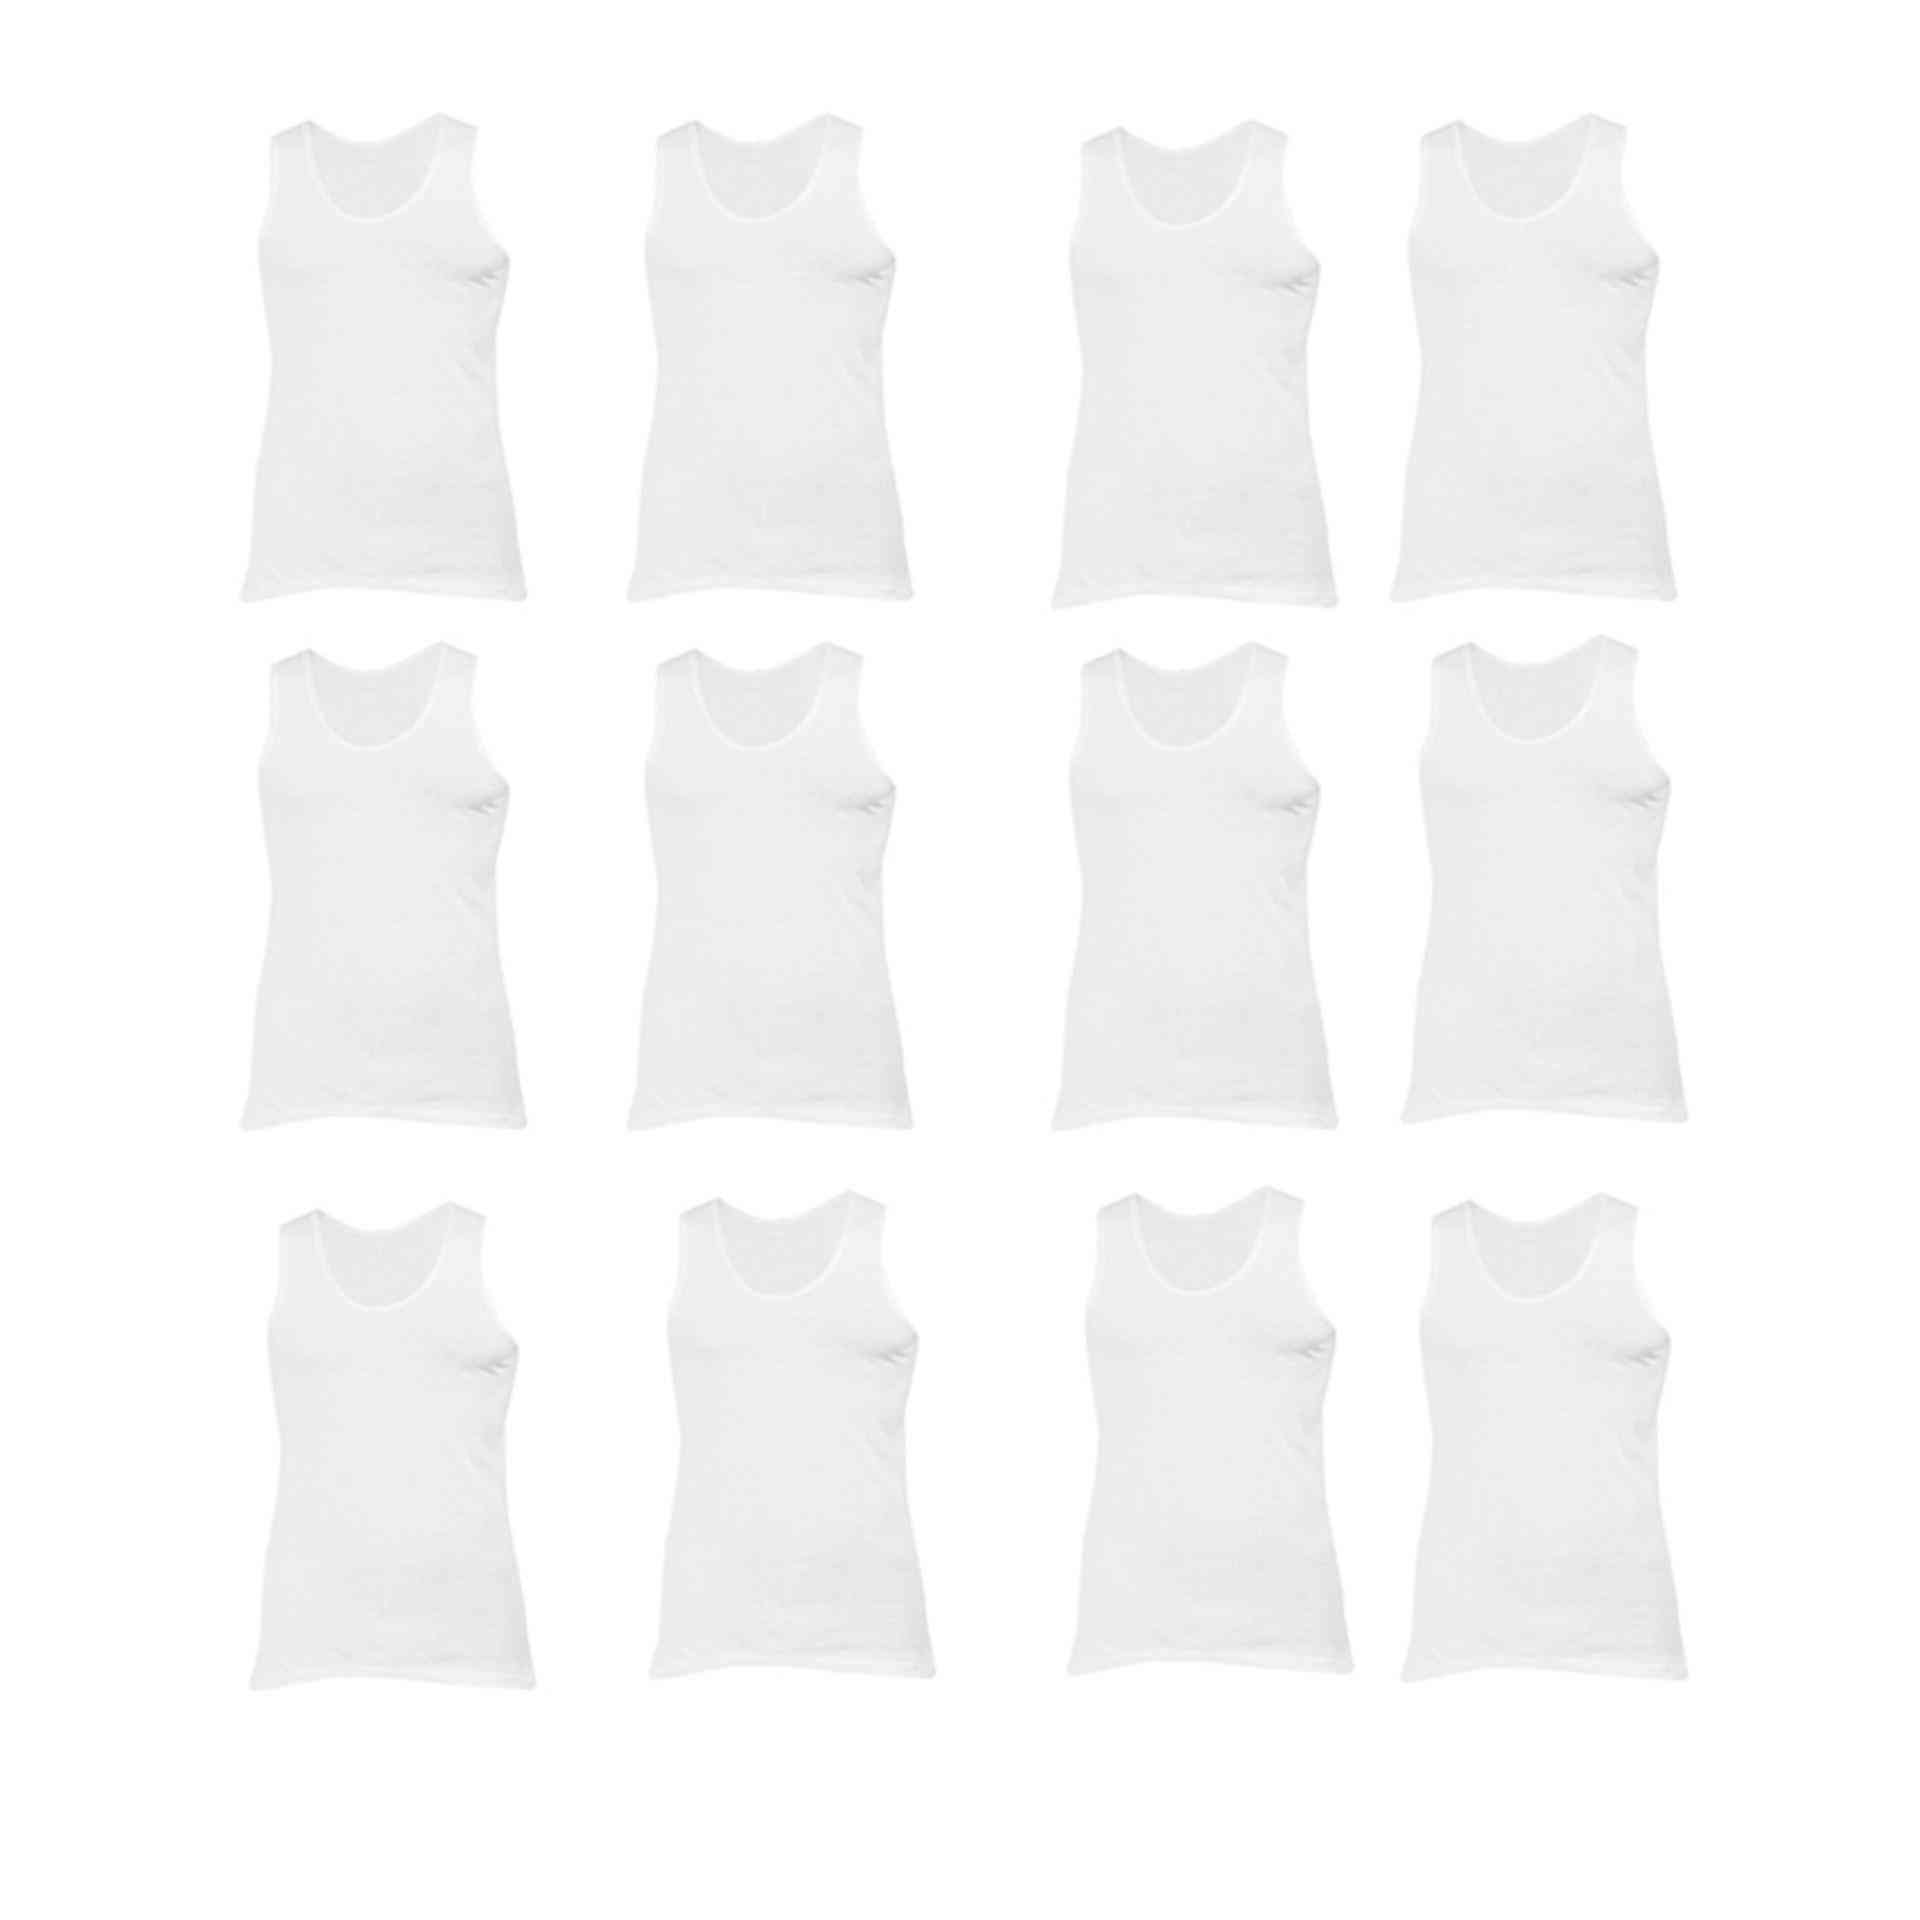 Daisy Luxury Pack of 12 Pure Cotton Vest for Men - White